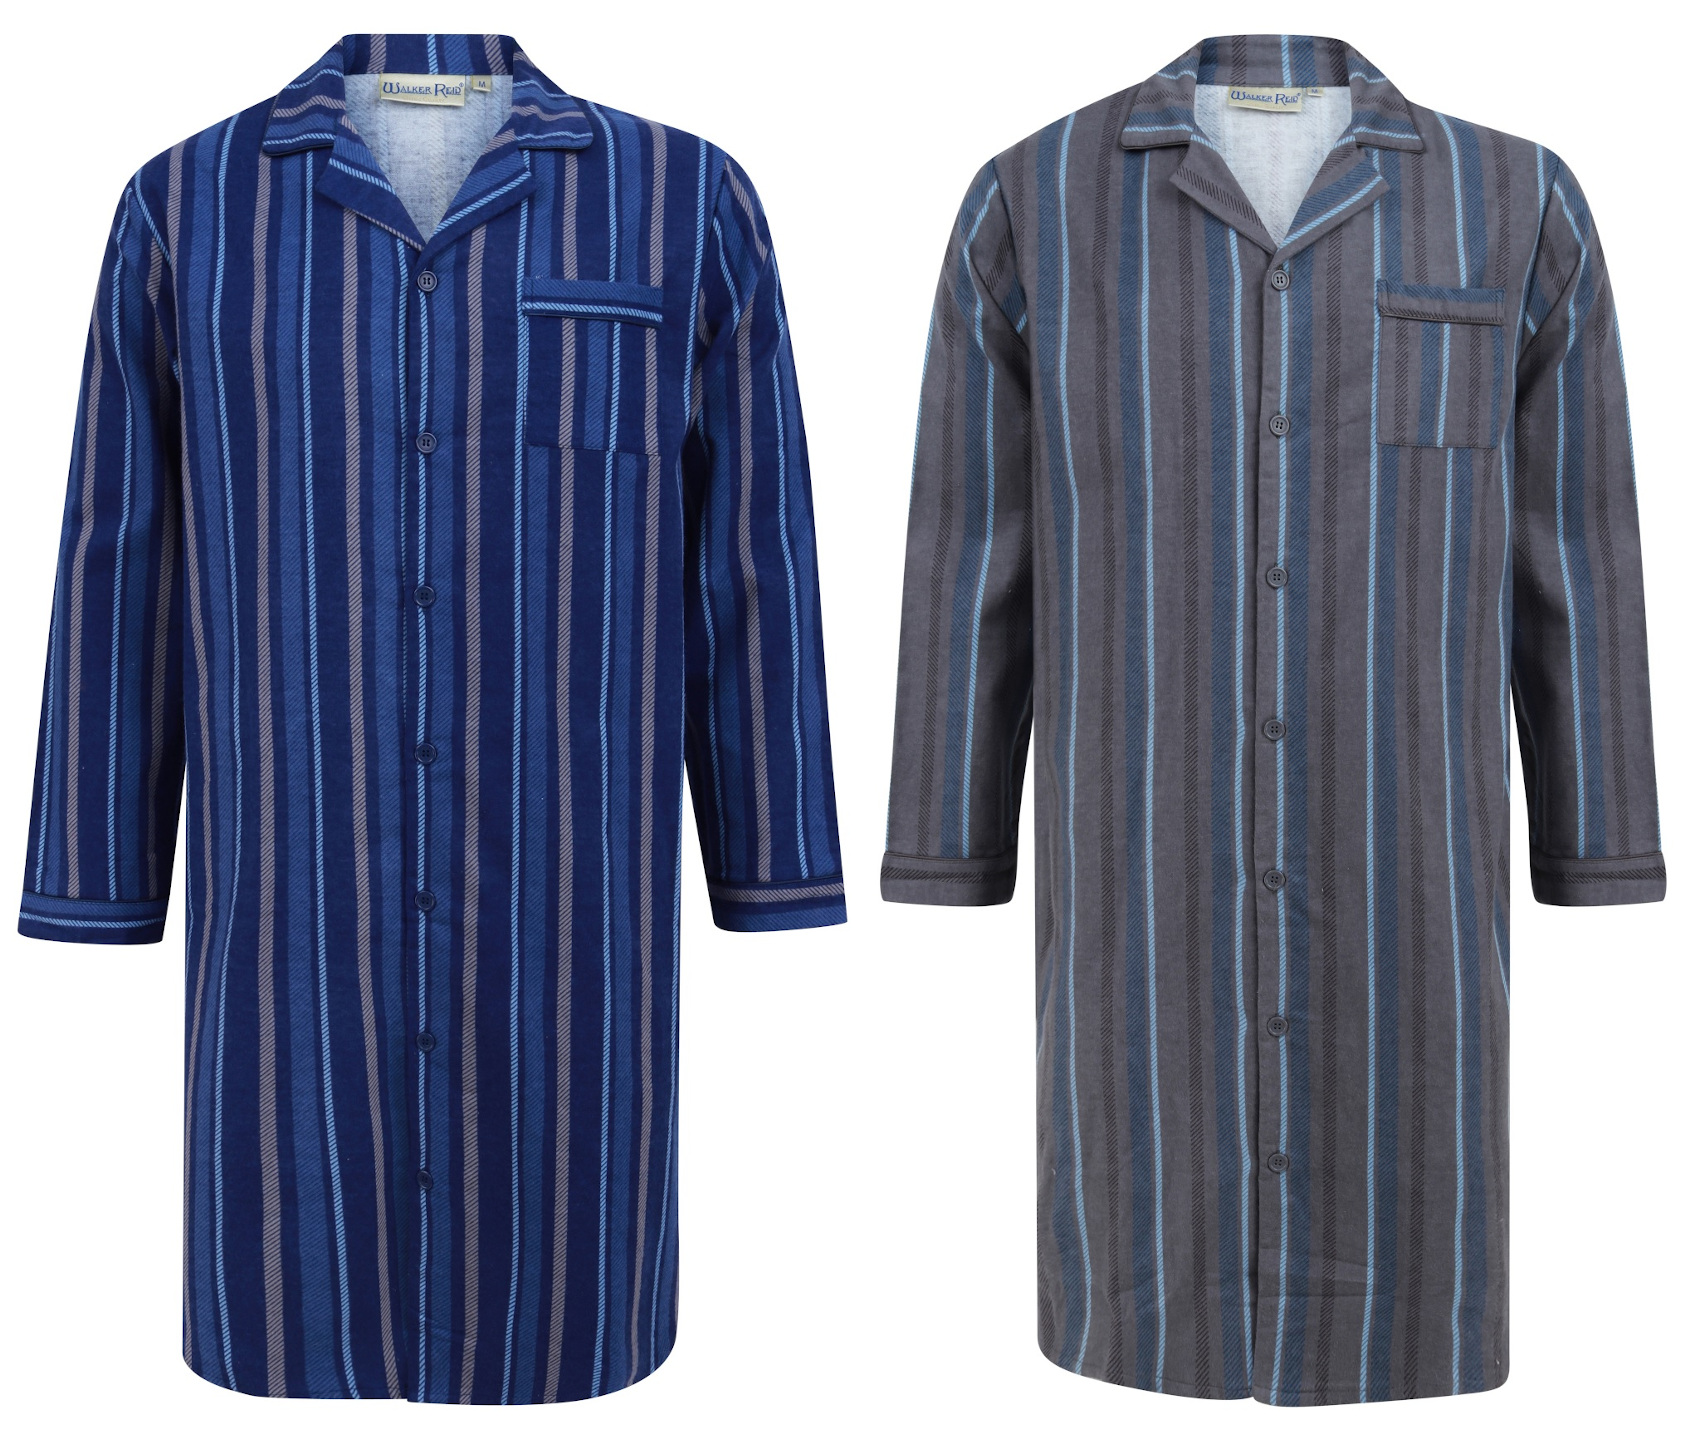 Walker Reid Mens Soft Cotton Button Up Collared Traditional Striped Nightshirt